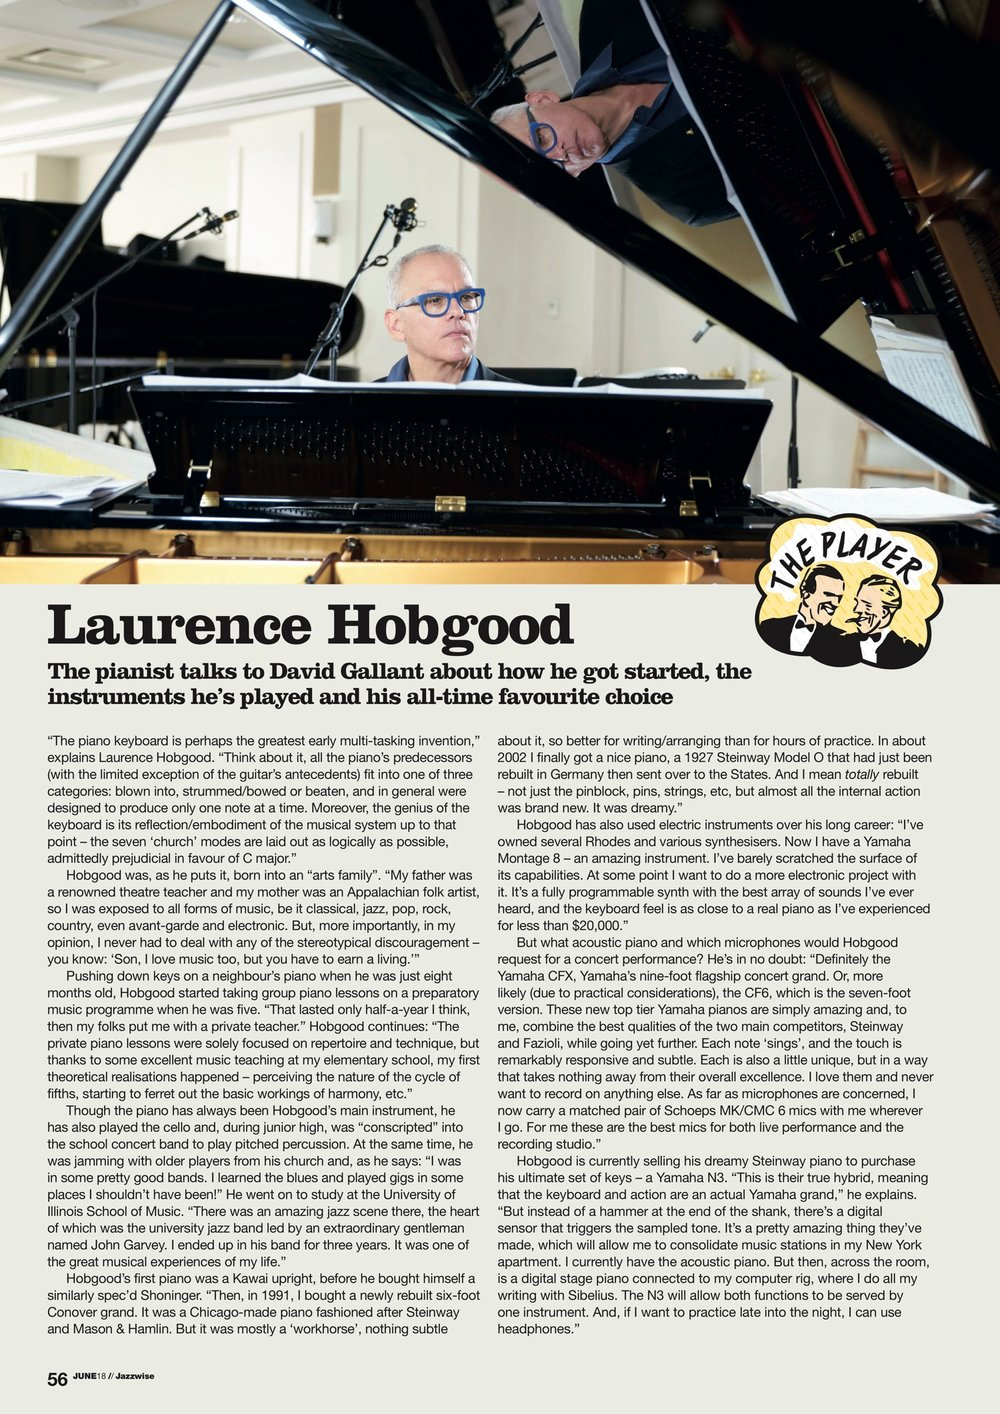 jazzwise-hobgood-review-image-page-56.jpg